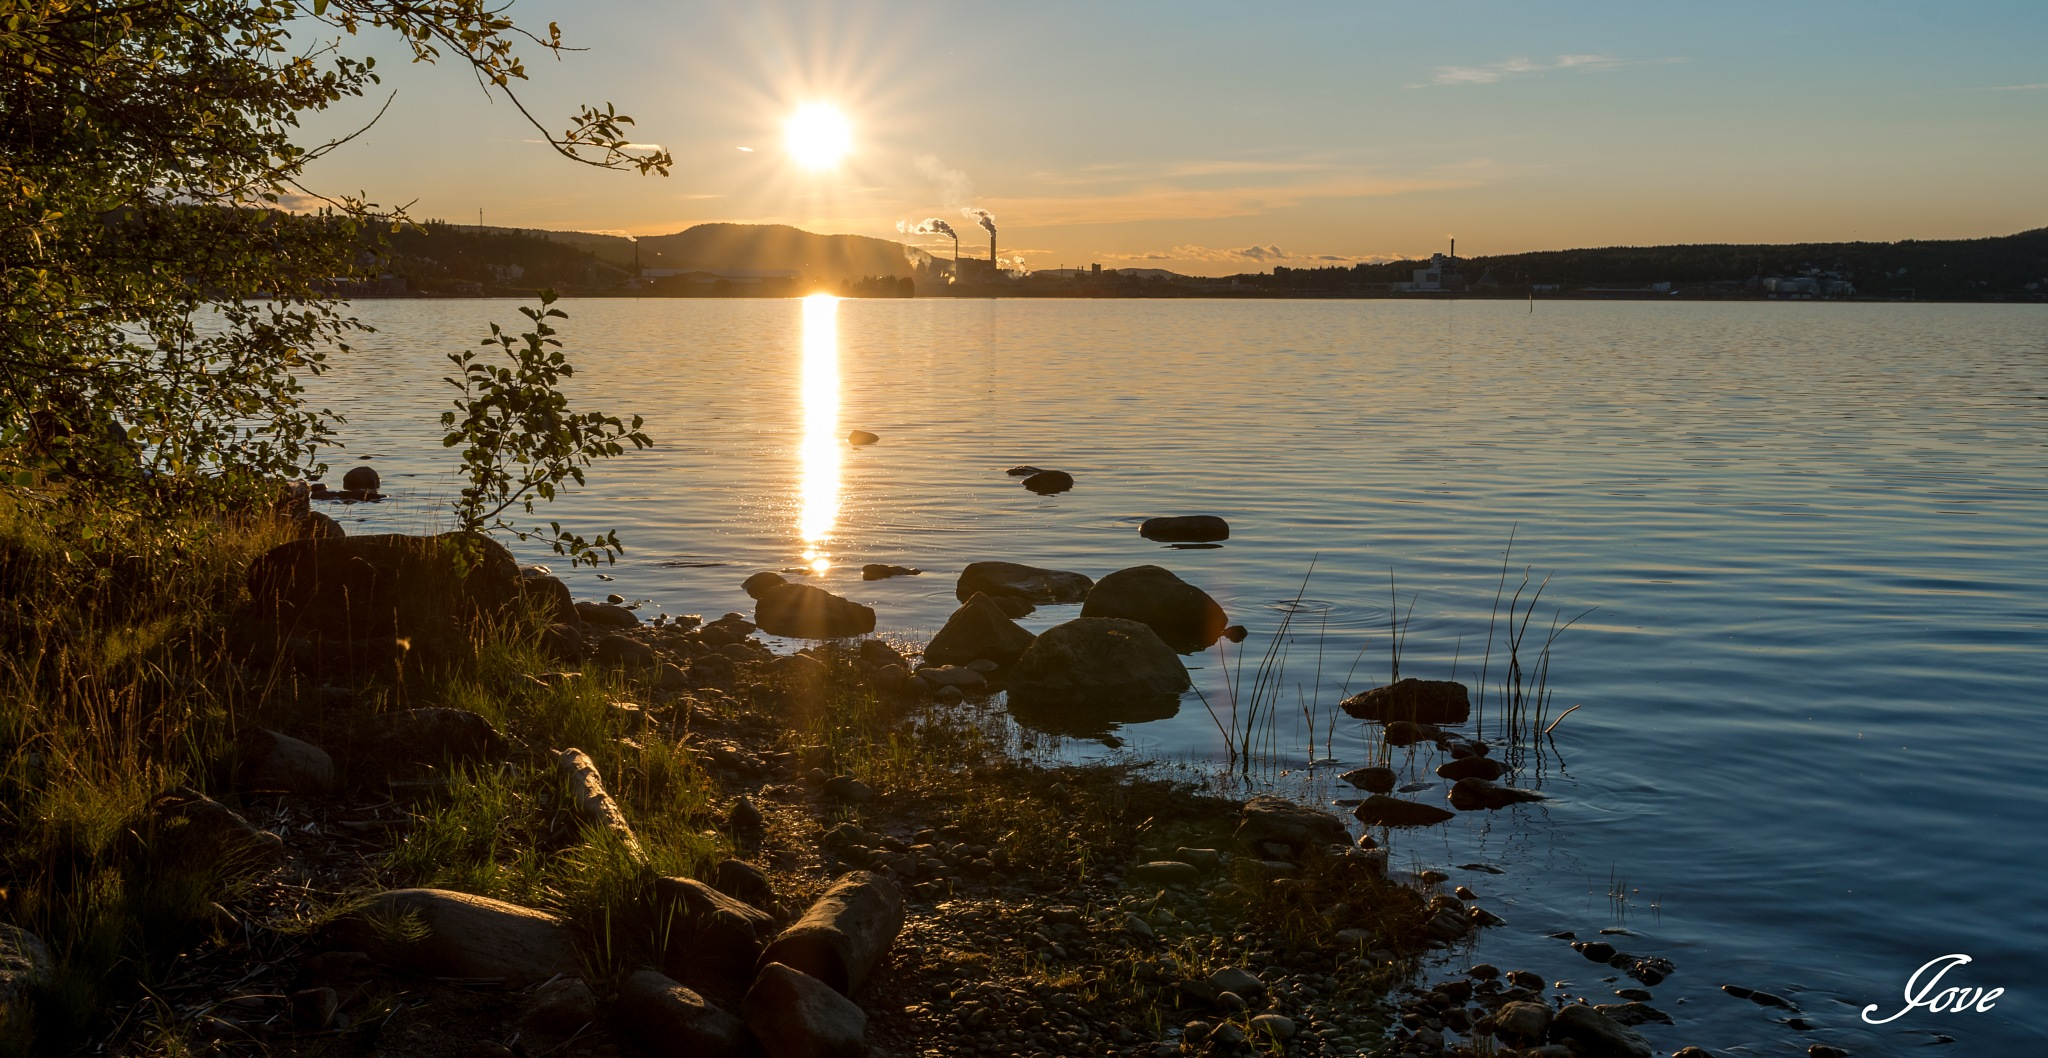 Beautiful sunset at alne by Jan-Ove Nordin